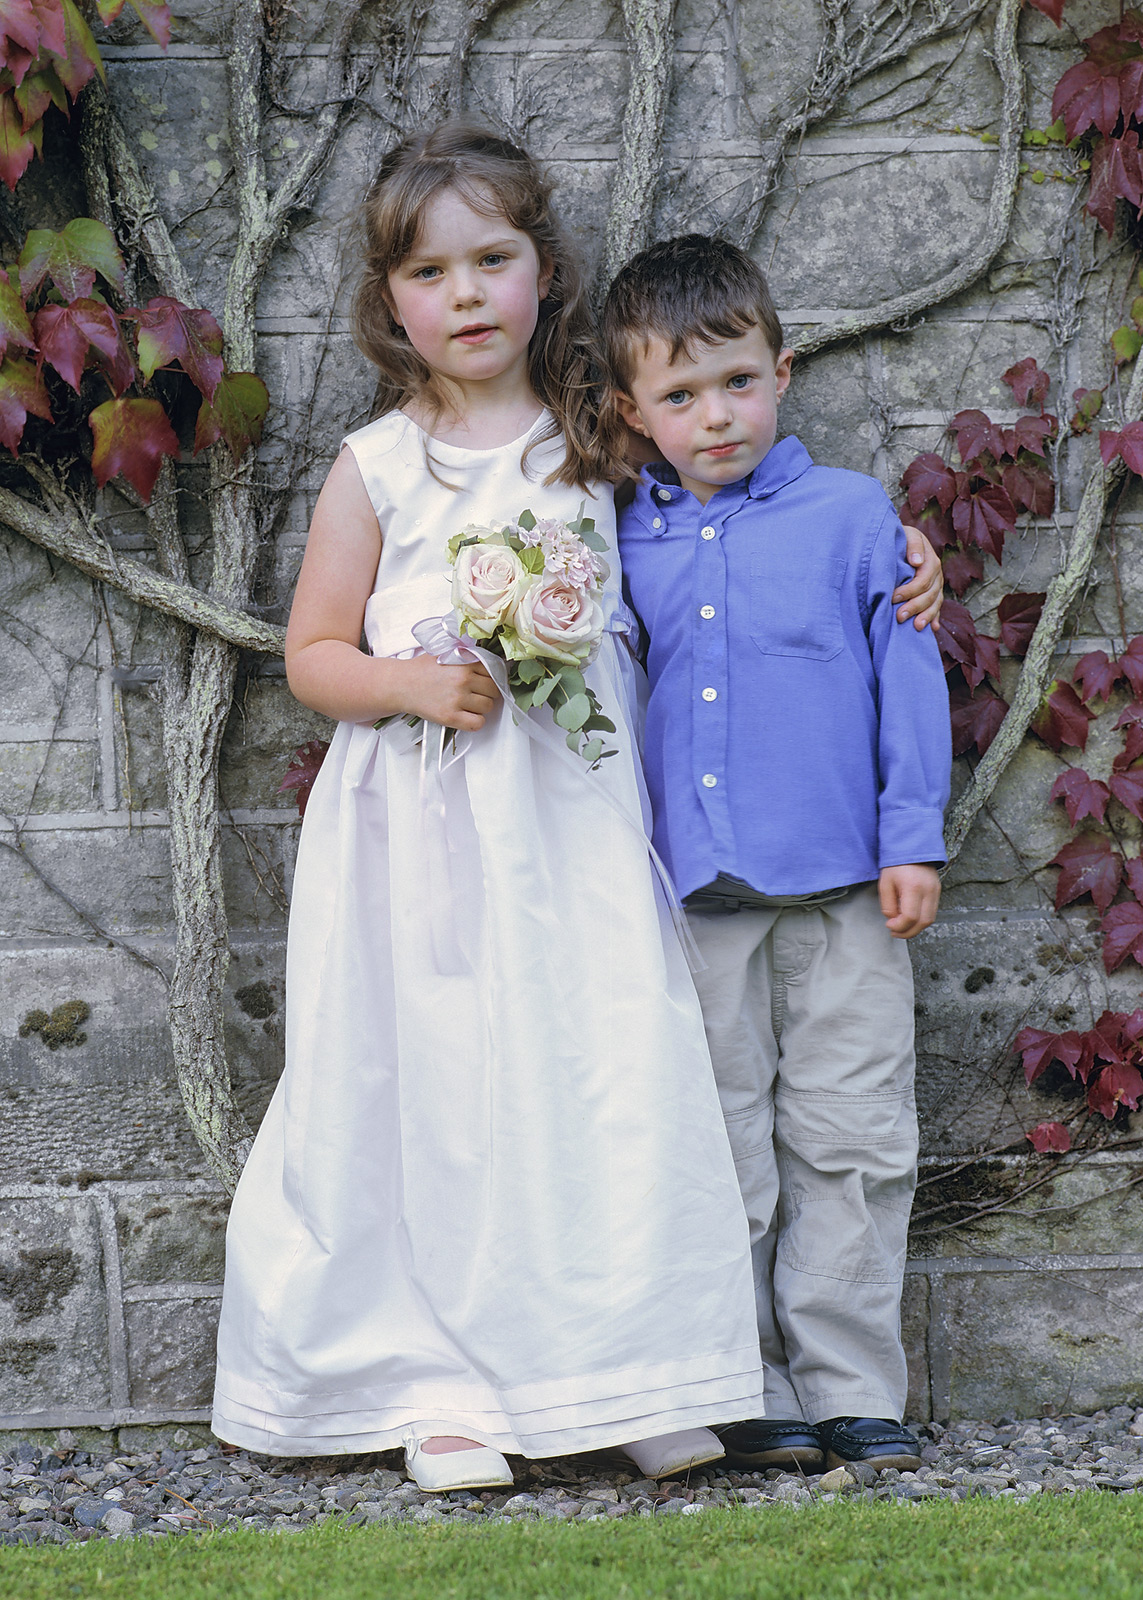 Although Ben was a little too young to be a Page Boy my daughter Lauren was just about old enough to be a bridesmaid at a friends...